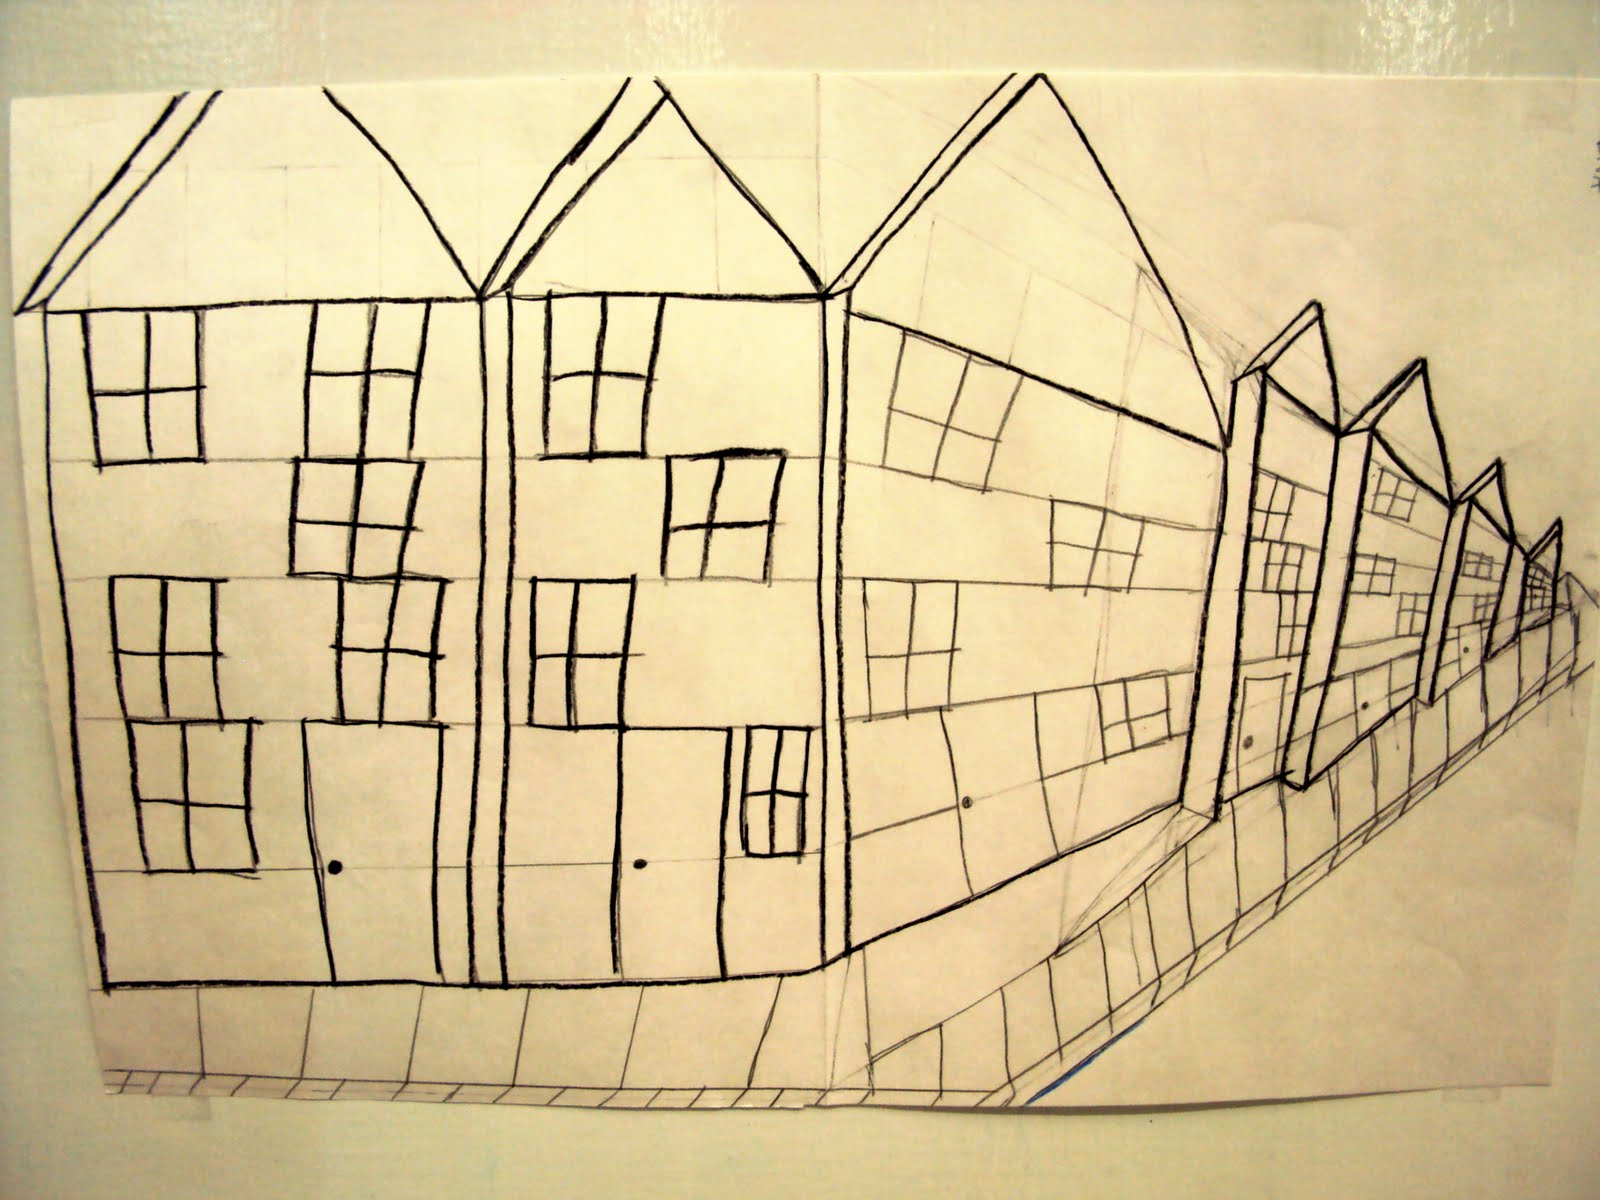 Michael J. Perkins School Blog: How to Draw a Building ...